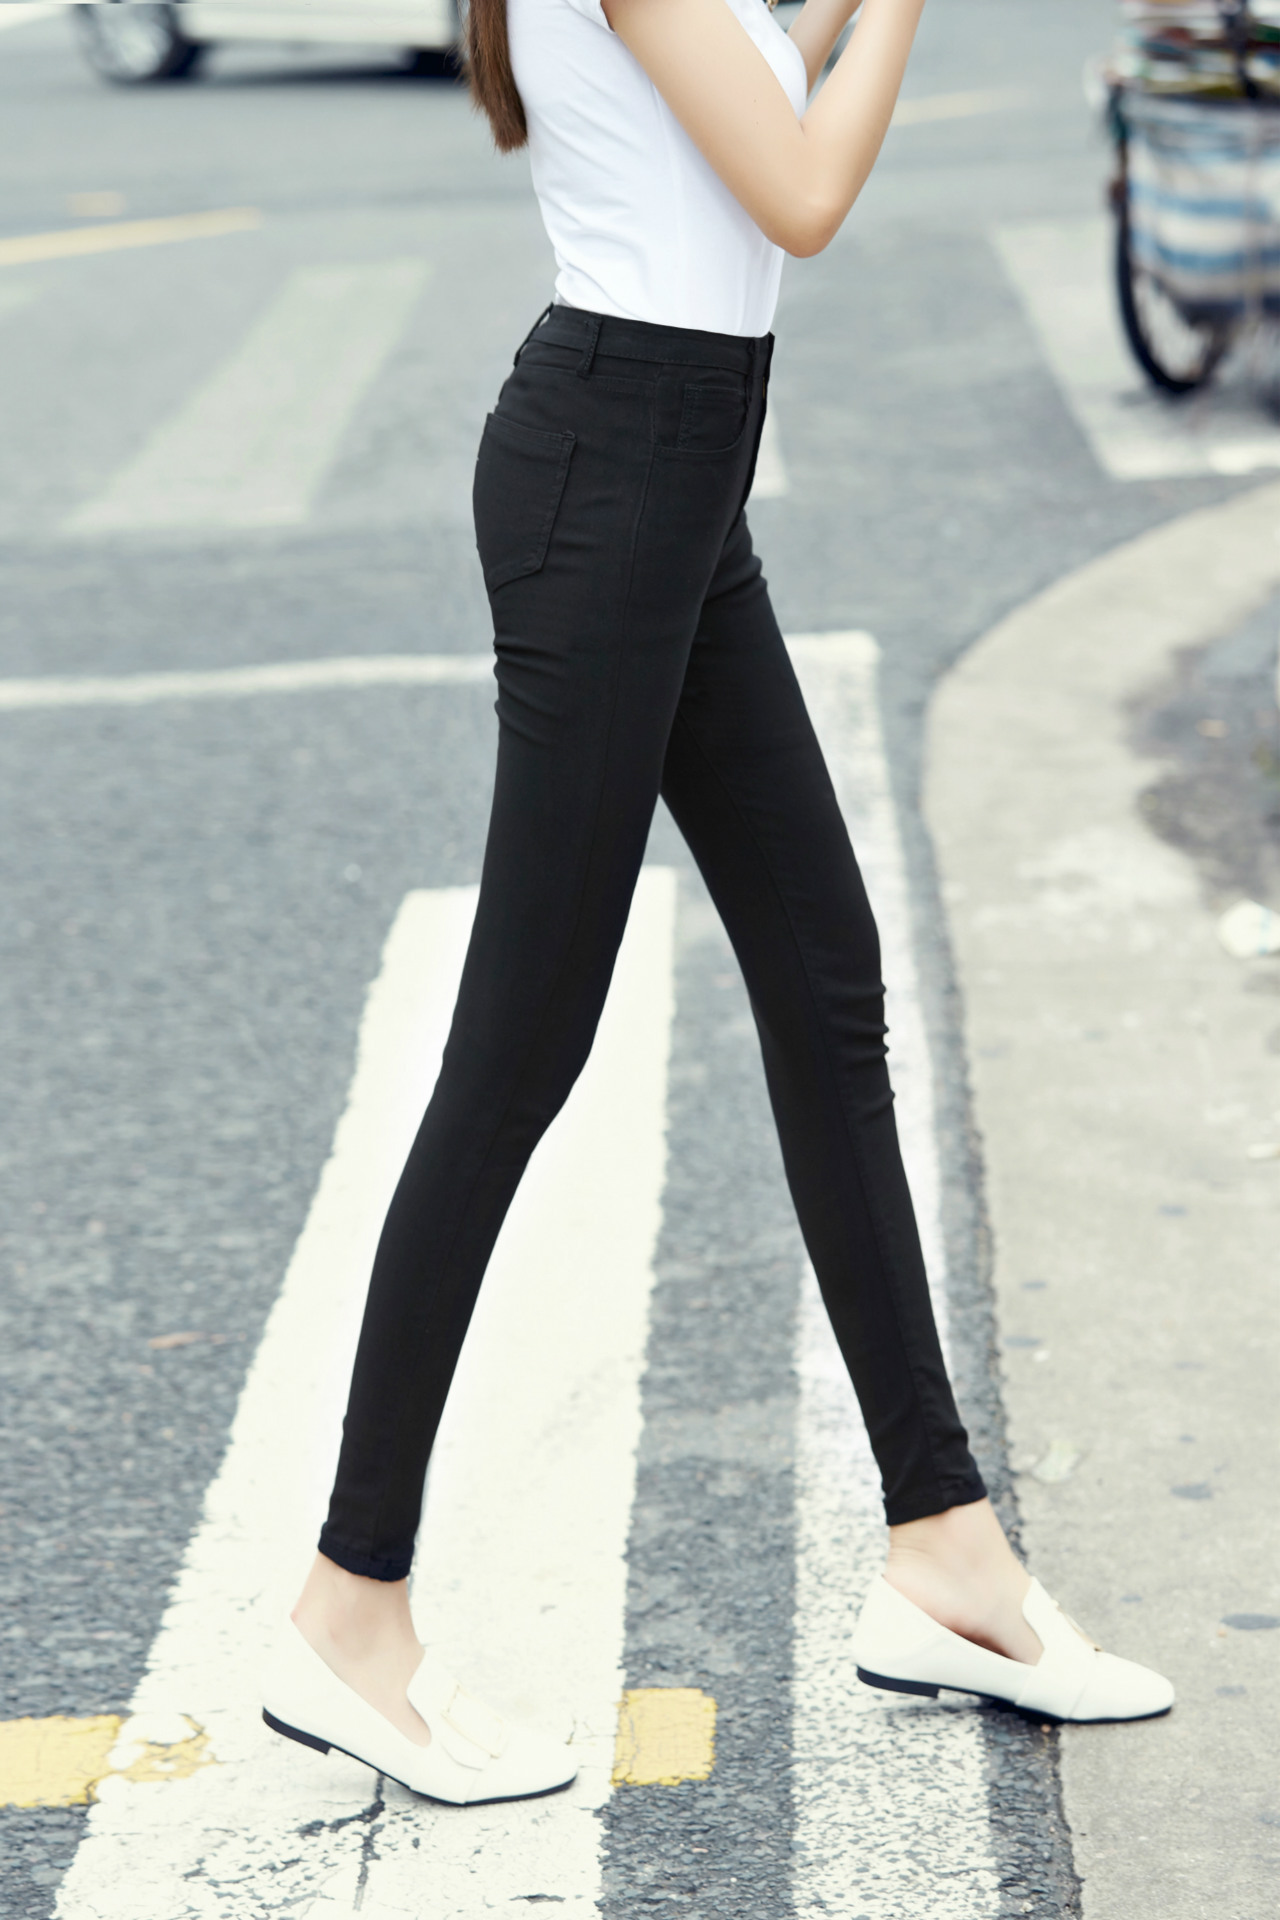 2019 Spring And Autumn Trousers Korean-style Women's Slim Fit Slimming Elasticity Black And White With Pattern Pencil Pants Skin